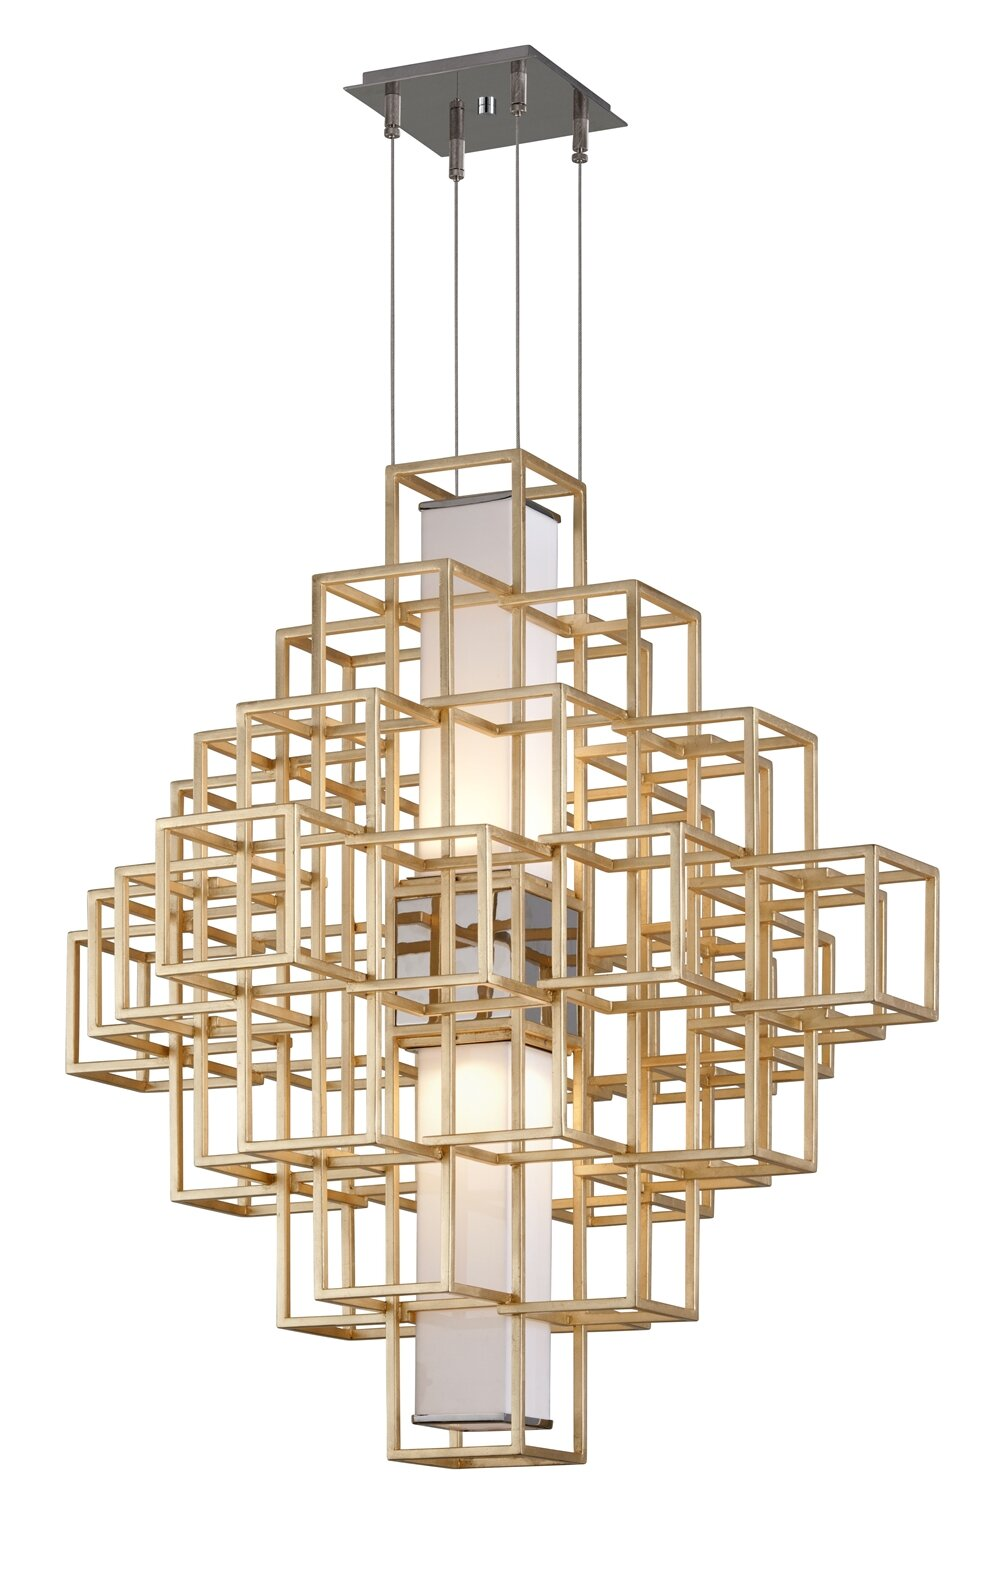 Corbett Lighting Metropolis 2 Light Unique Statement Geometric Chandelier Wayfair